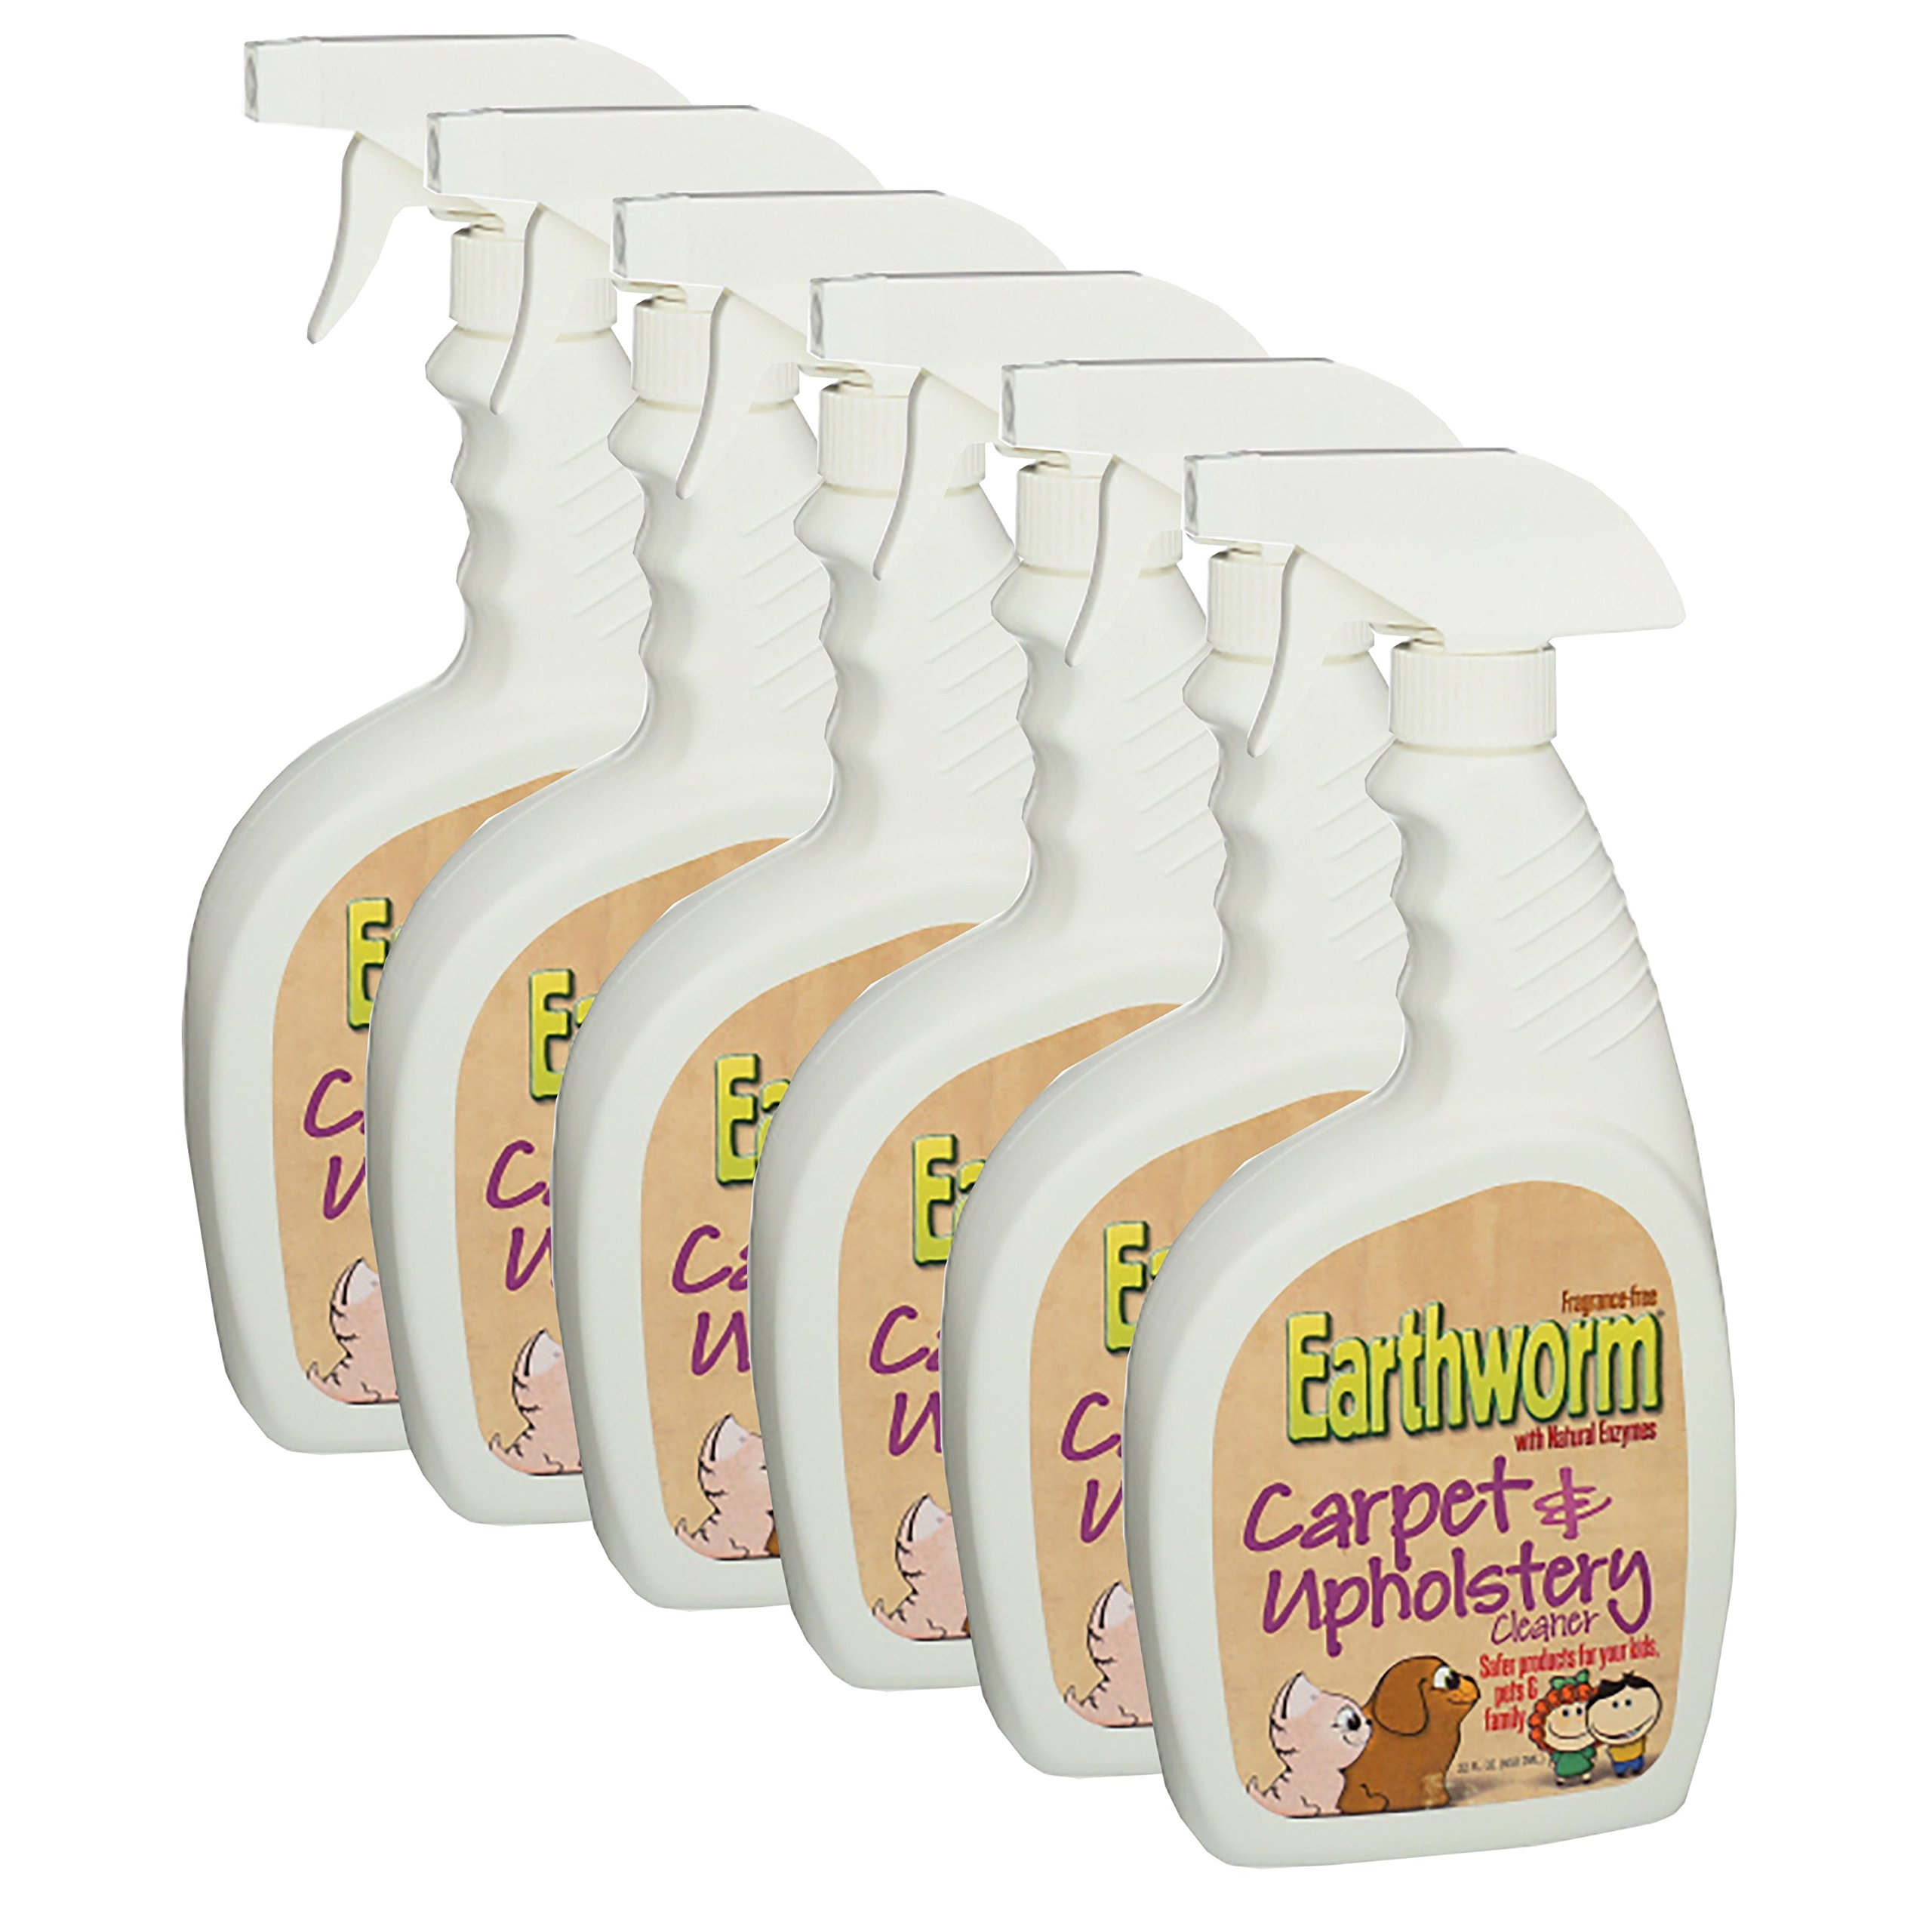 Earthworm Carpet & Upholstery Cleaner Spot & Stain Remover - Natural Enzymes, Safer for Family, Environmentally Responsible - 22 oz (Pack of Six (6)) by Earthworm